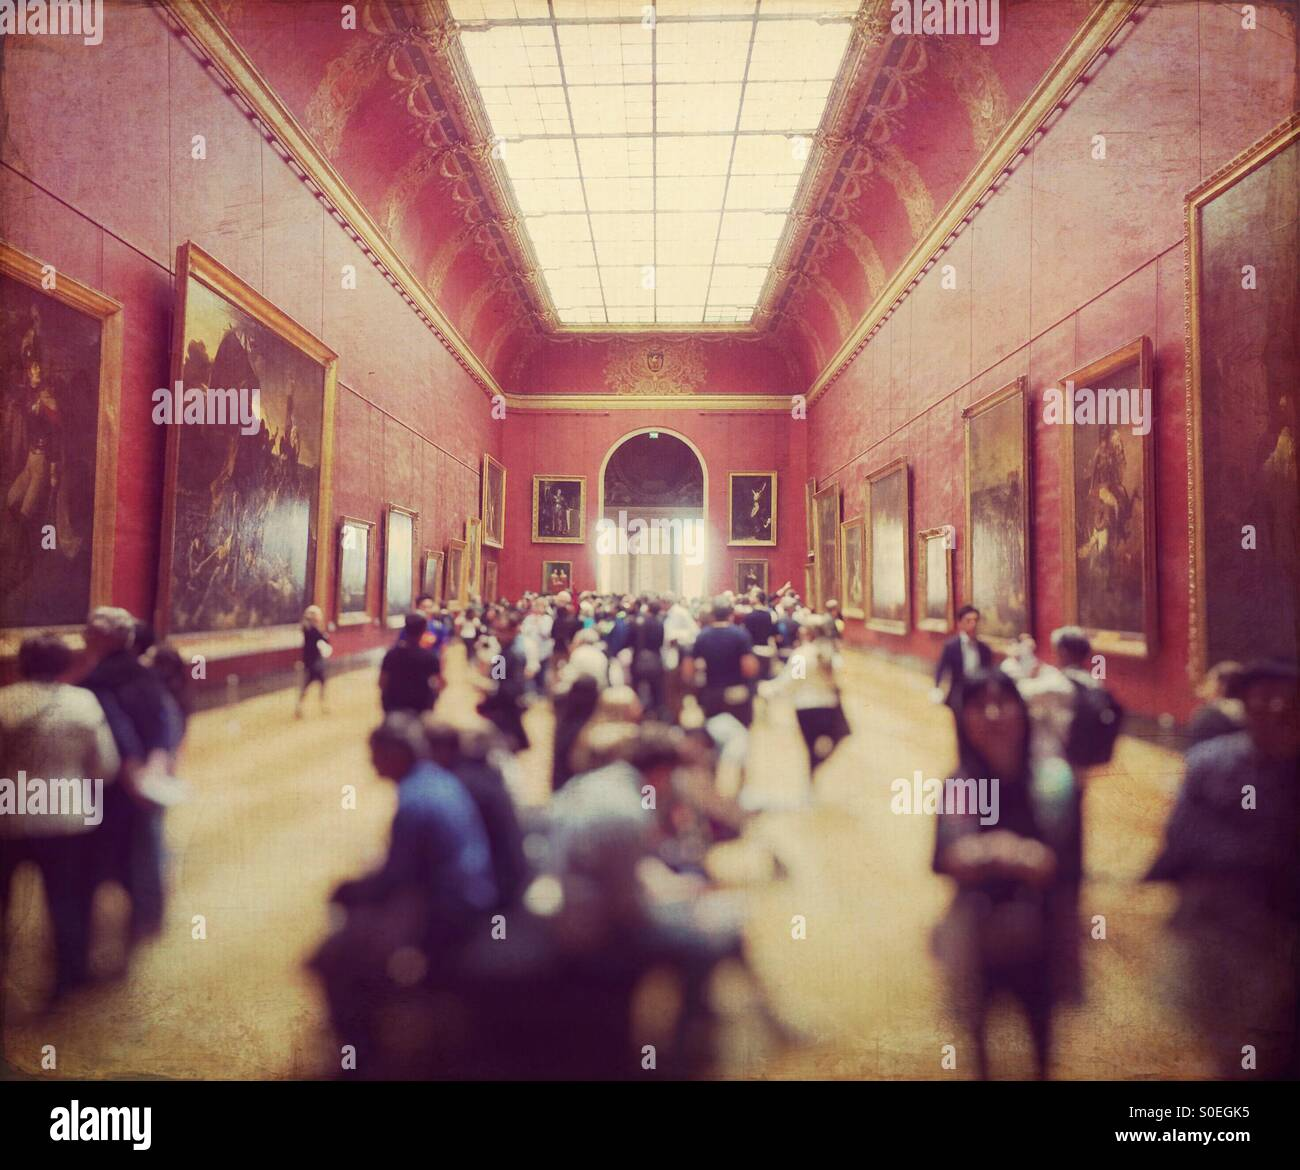 Crowd of tourists in the Red Room gallery at the Louvre museum in Paris, France. Vintage texture overlay. - Stock Image